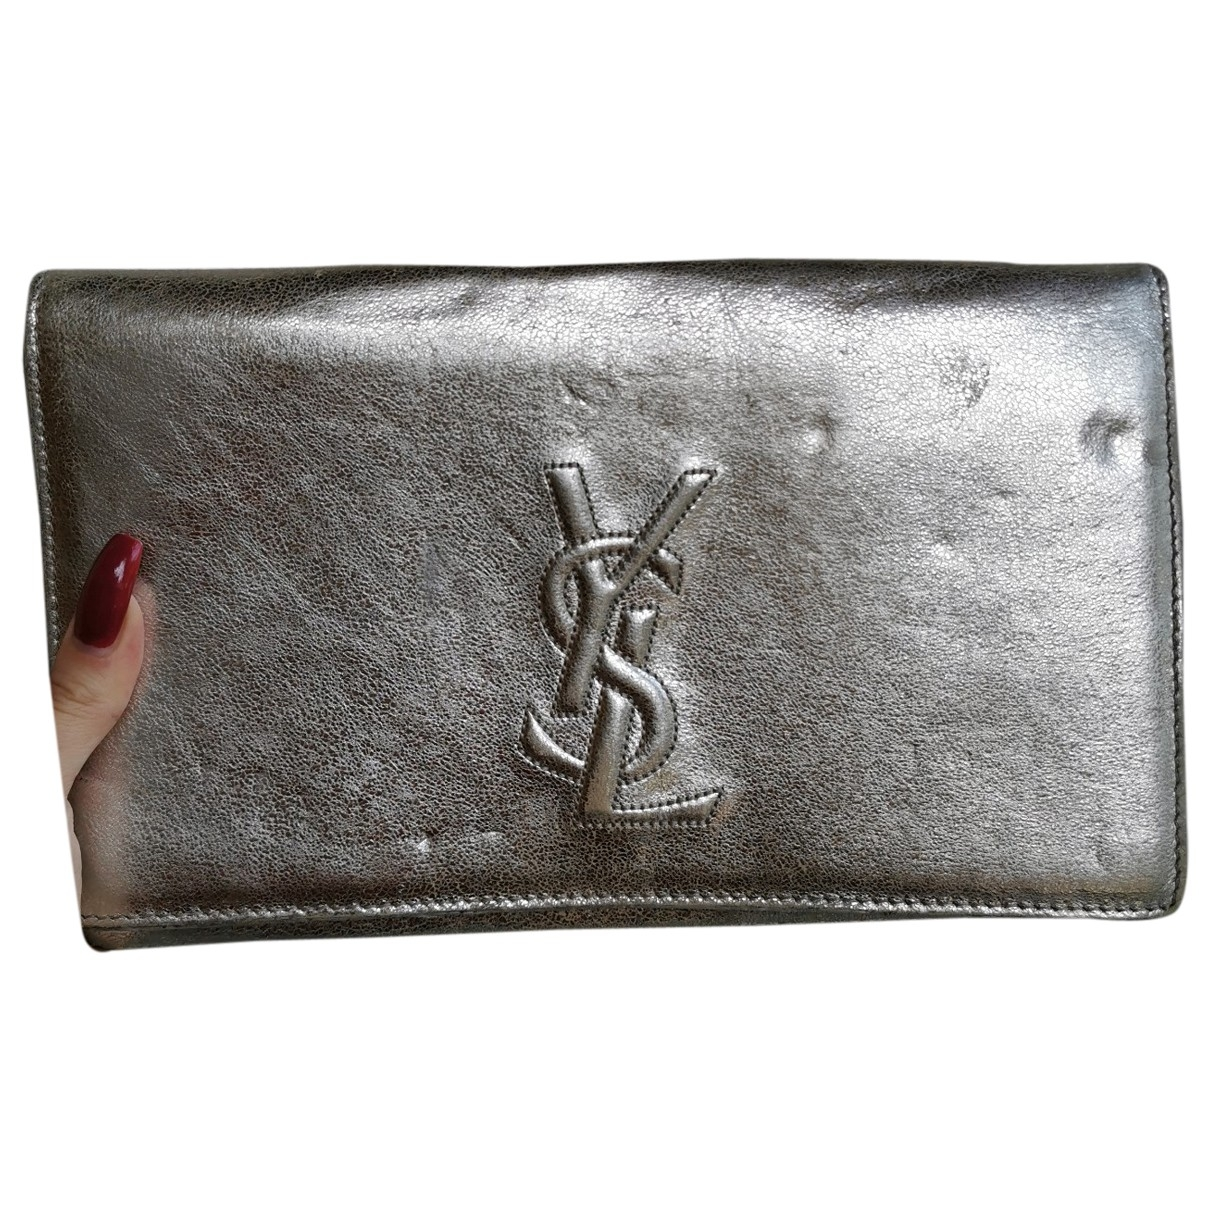 Saint Laurent \N Silver Leather Clutch bag for Women \N